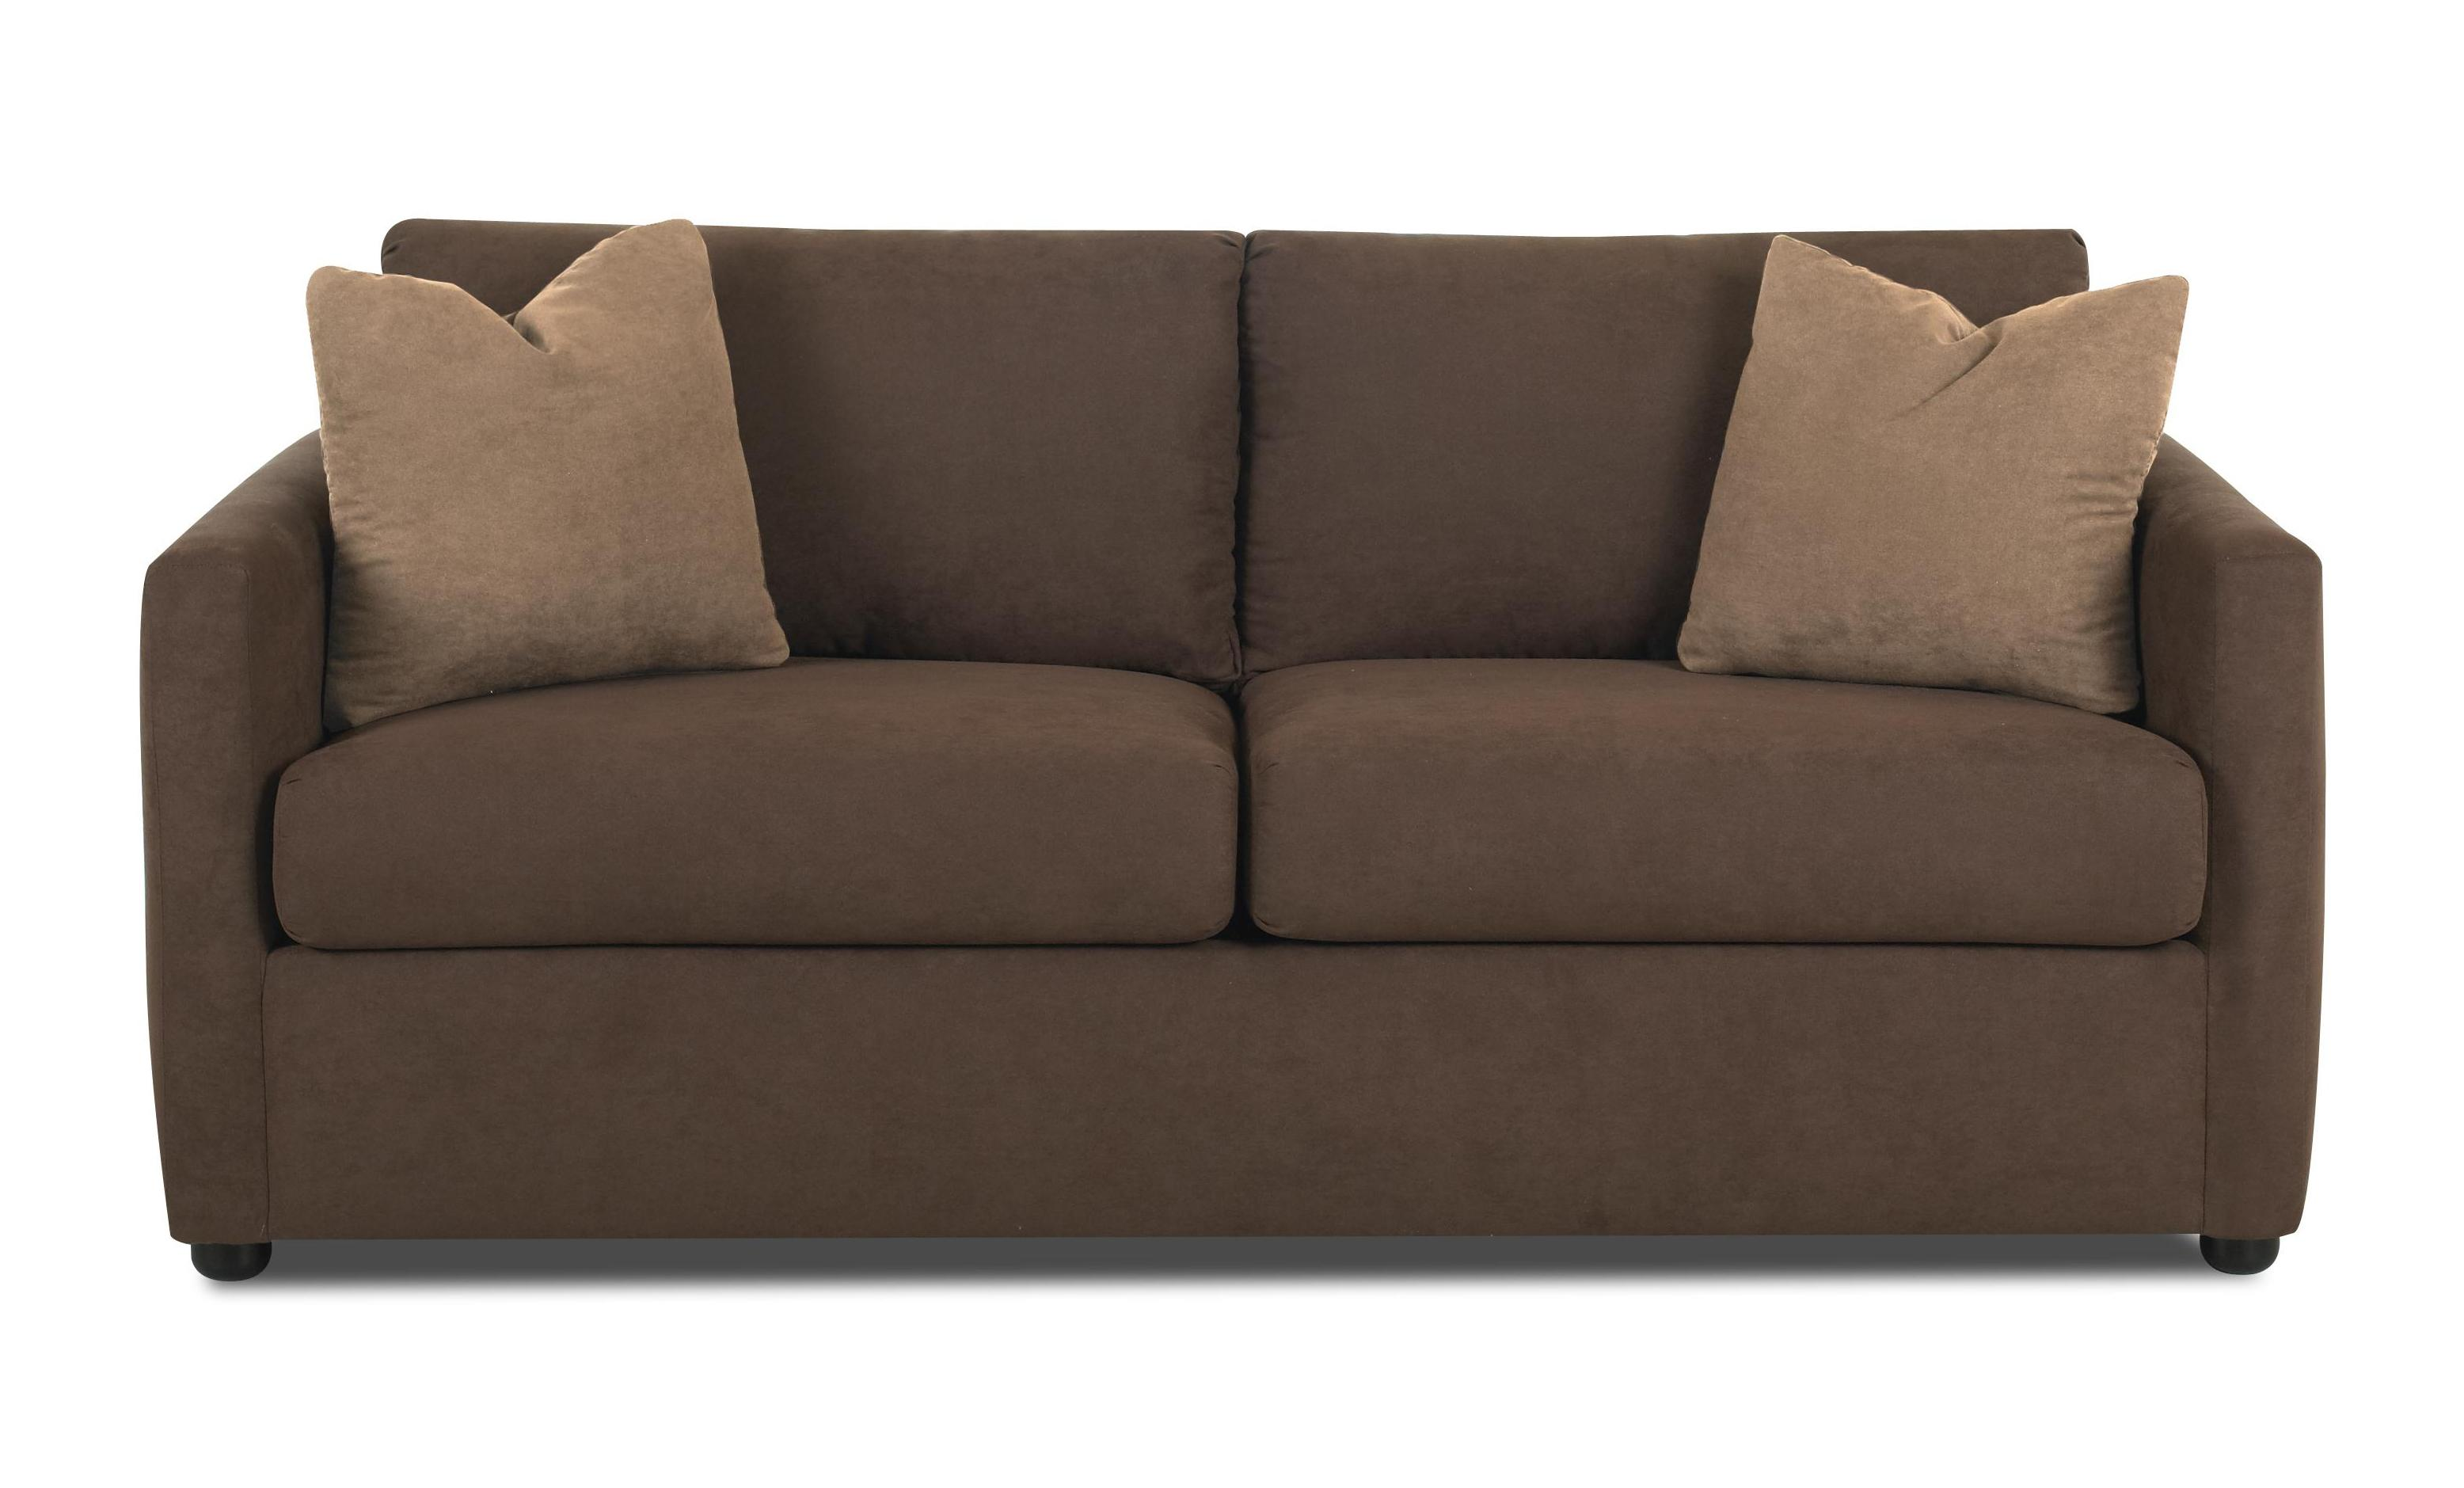 Klaussner Jacobs Regular Full Size Sleeper Sofa Value